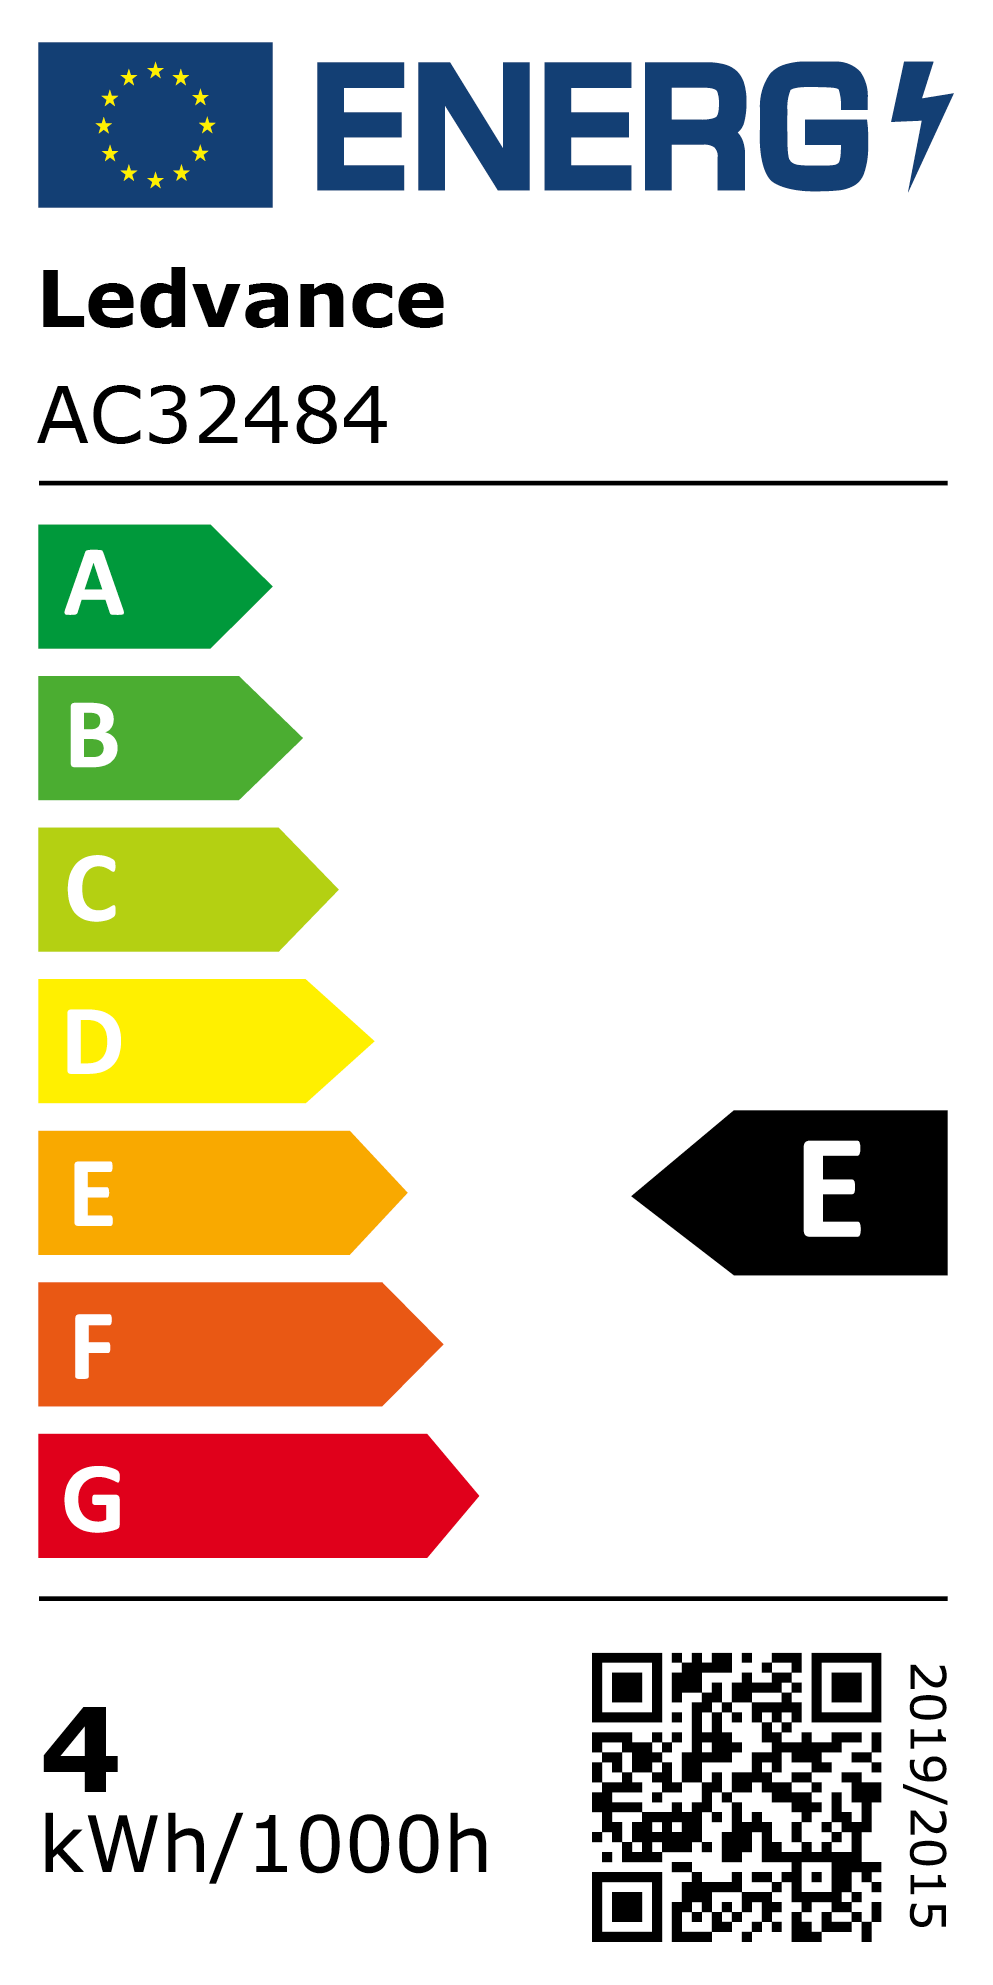 New 2021 Energy Rating Label: MPN AC32484